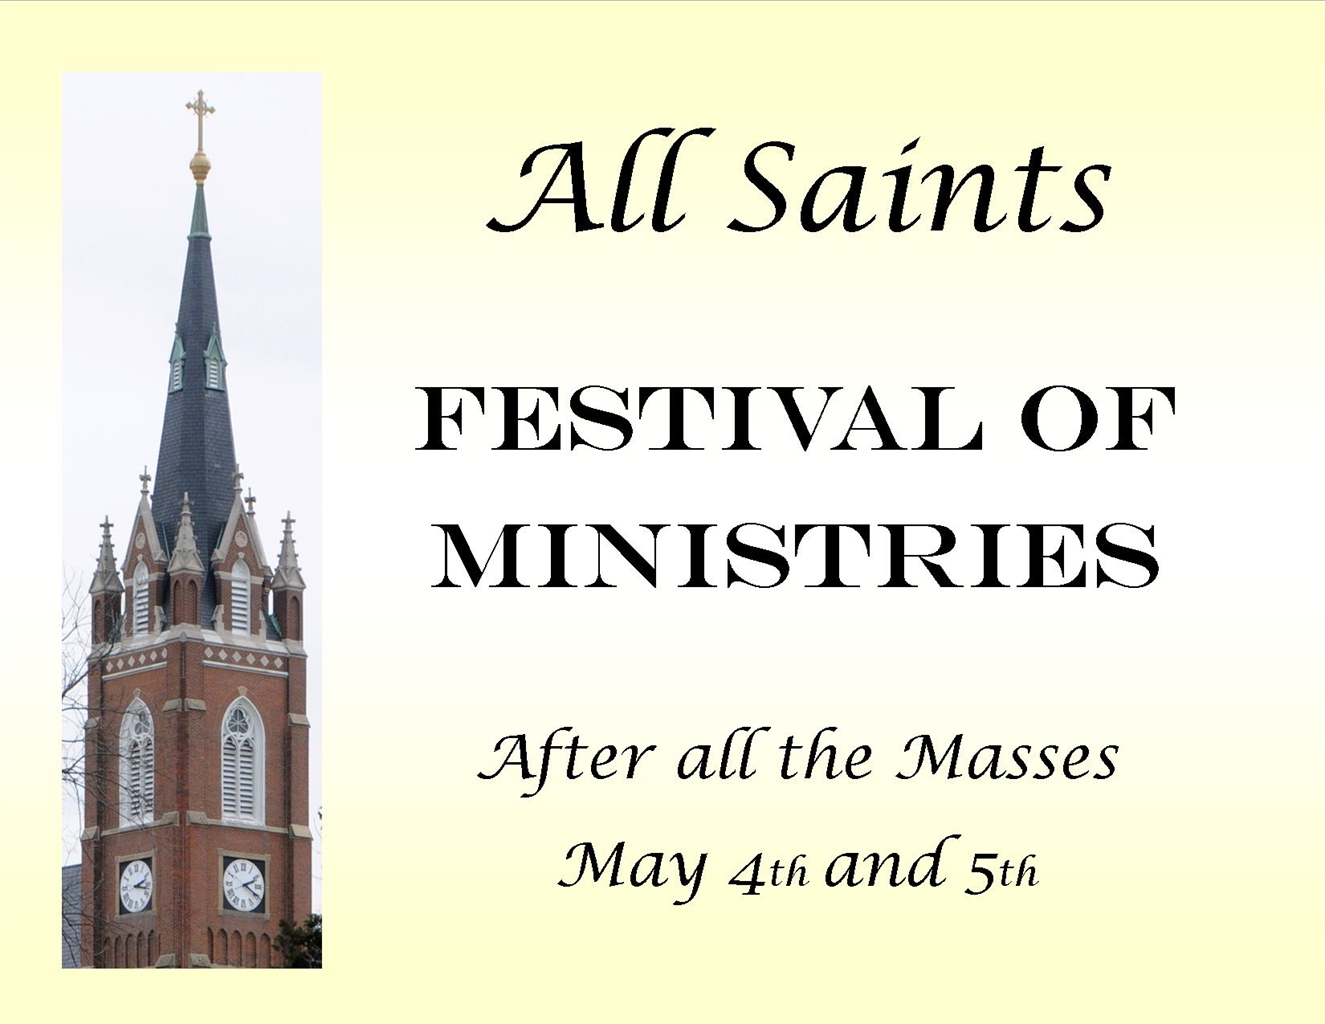 Festival of Ministries